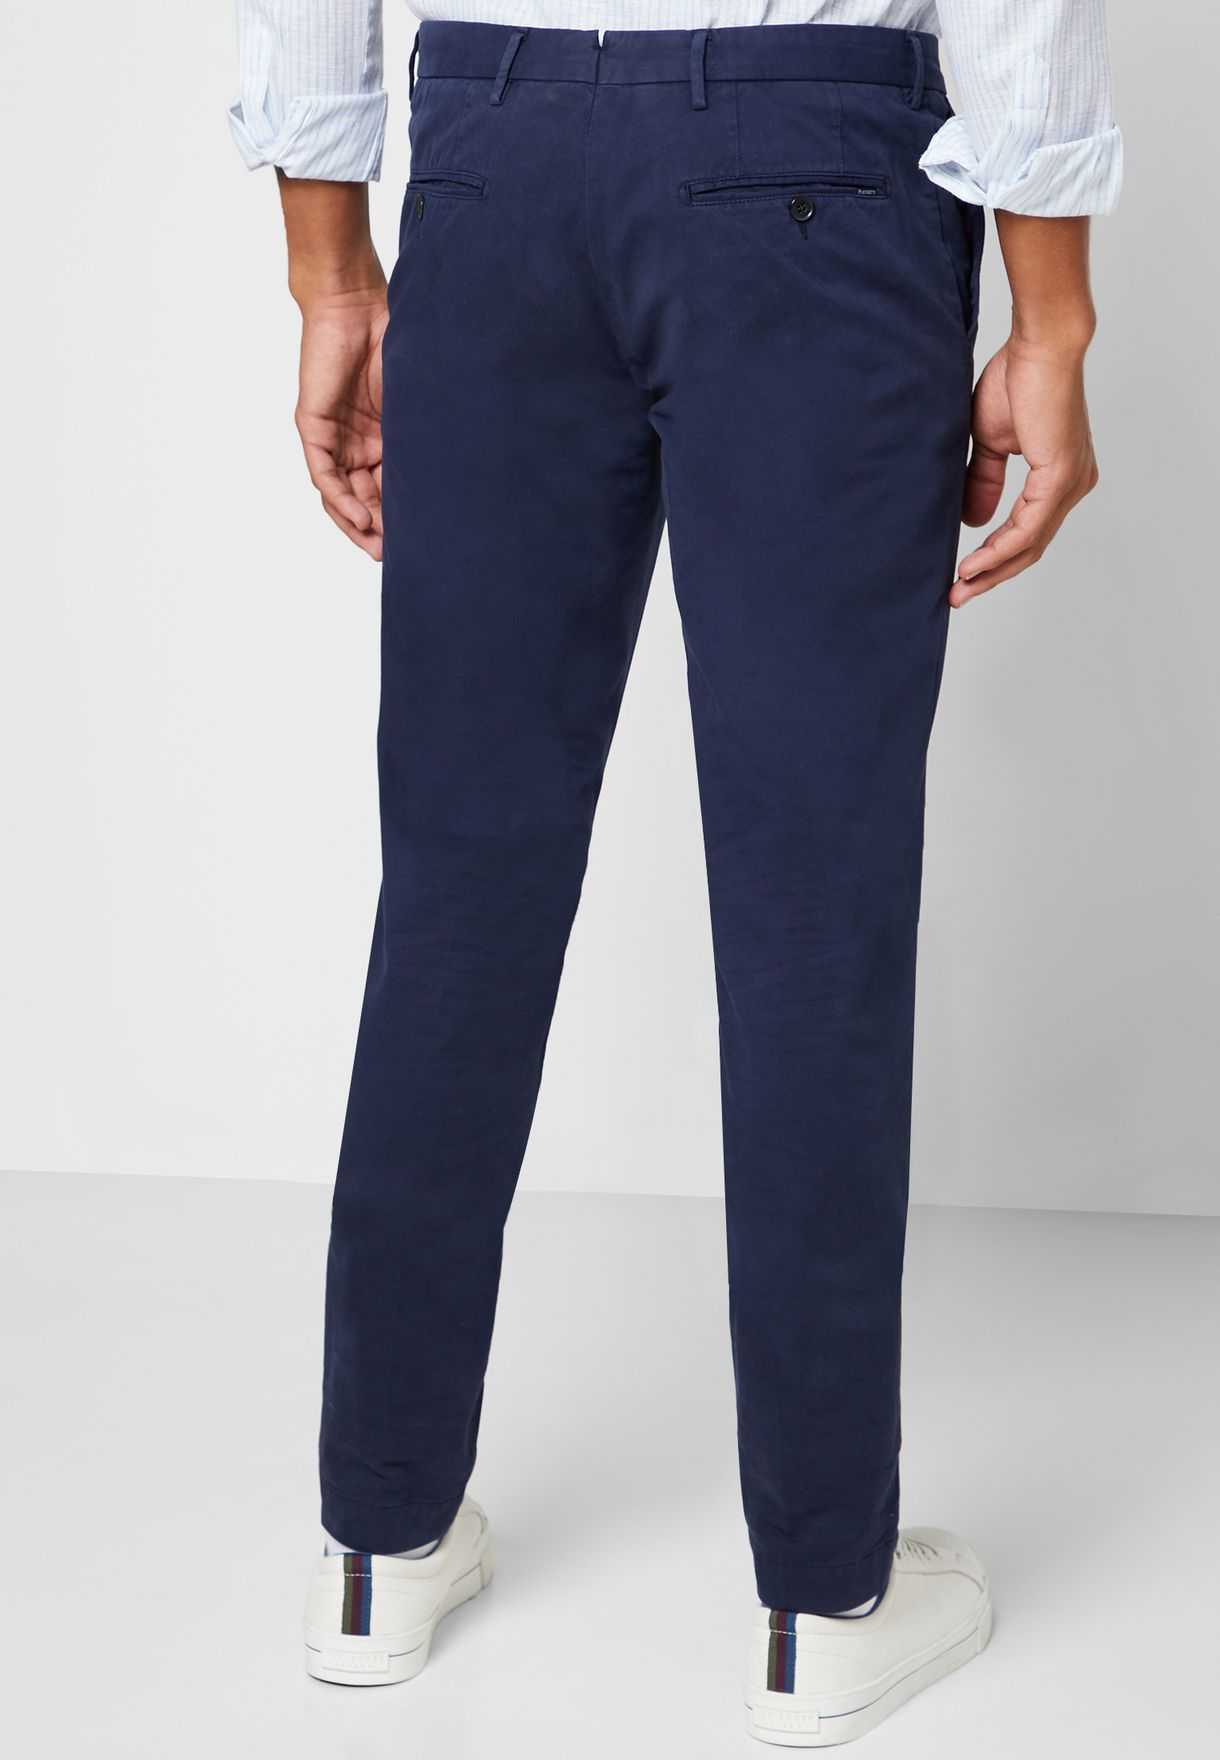 Kensington Slim Fit Chinos